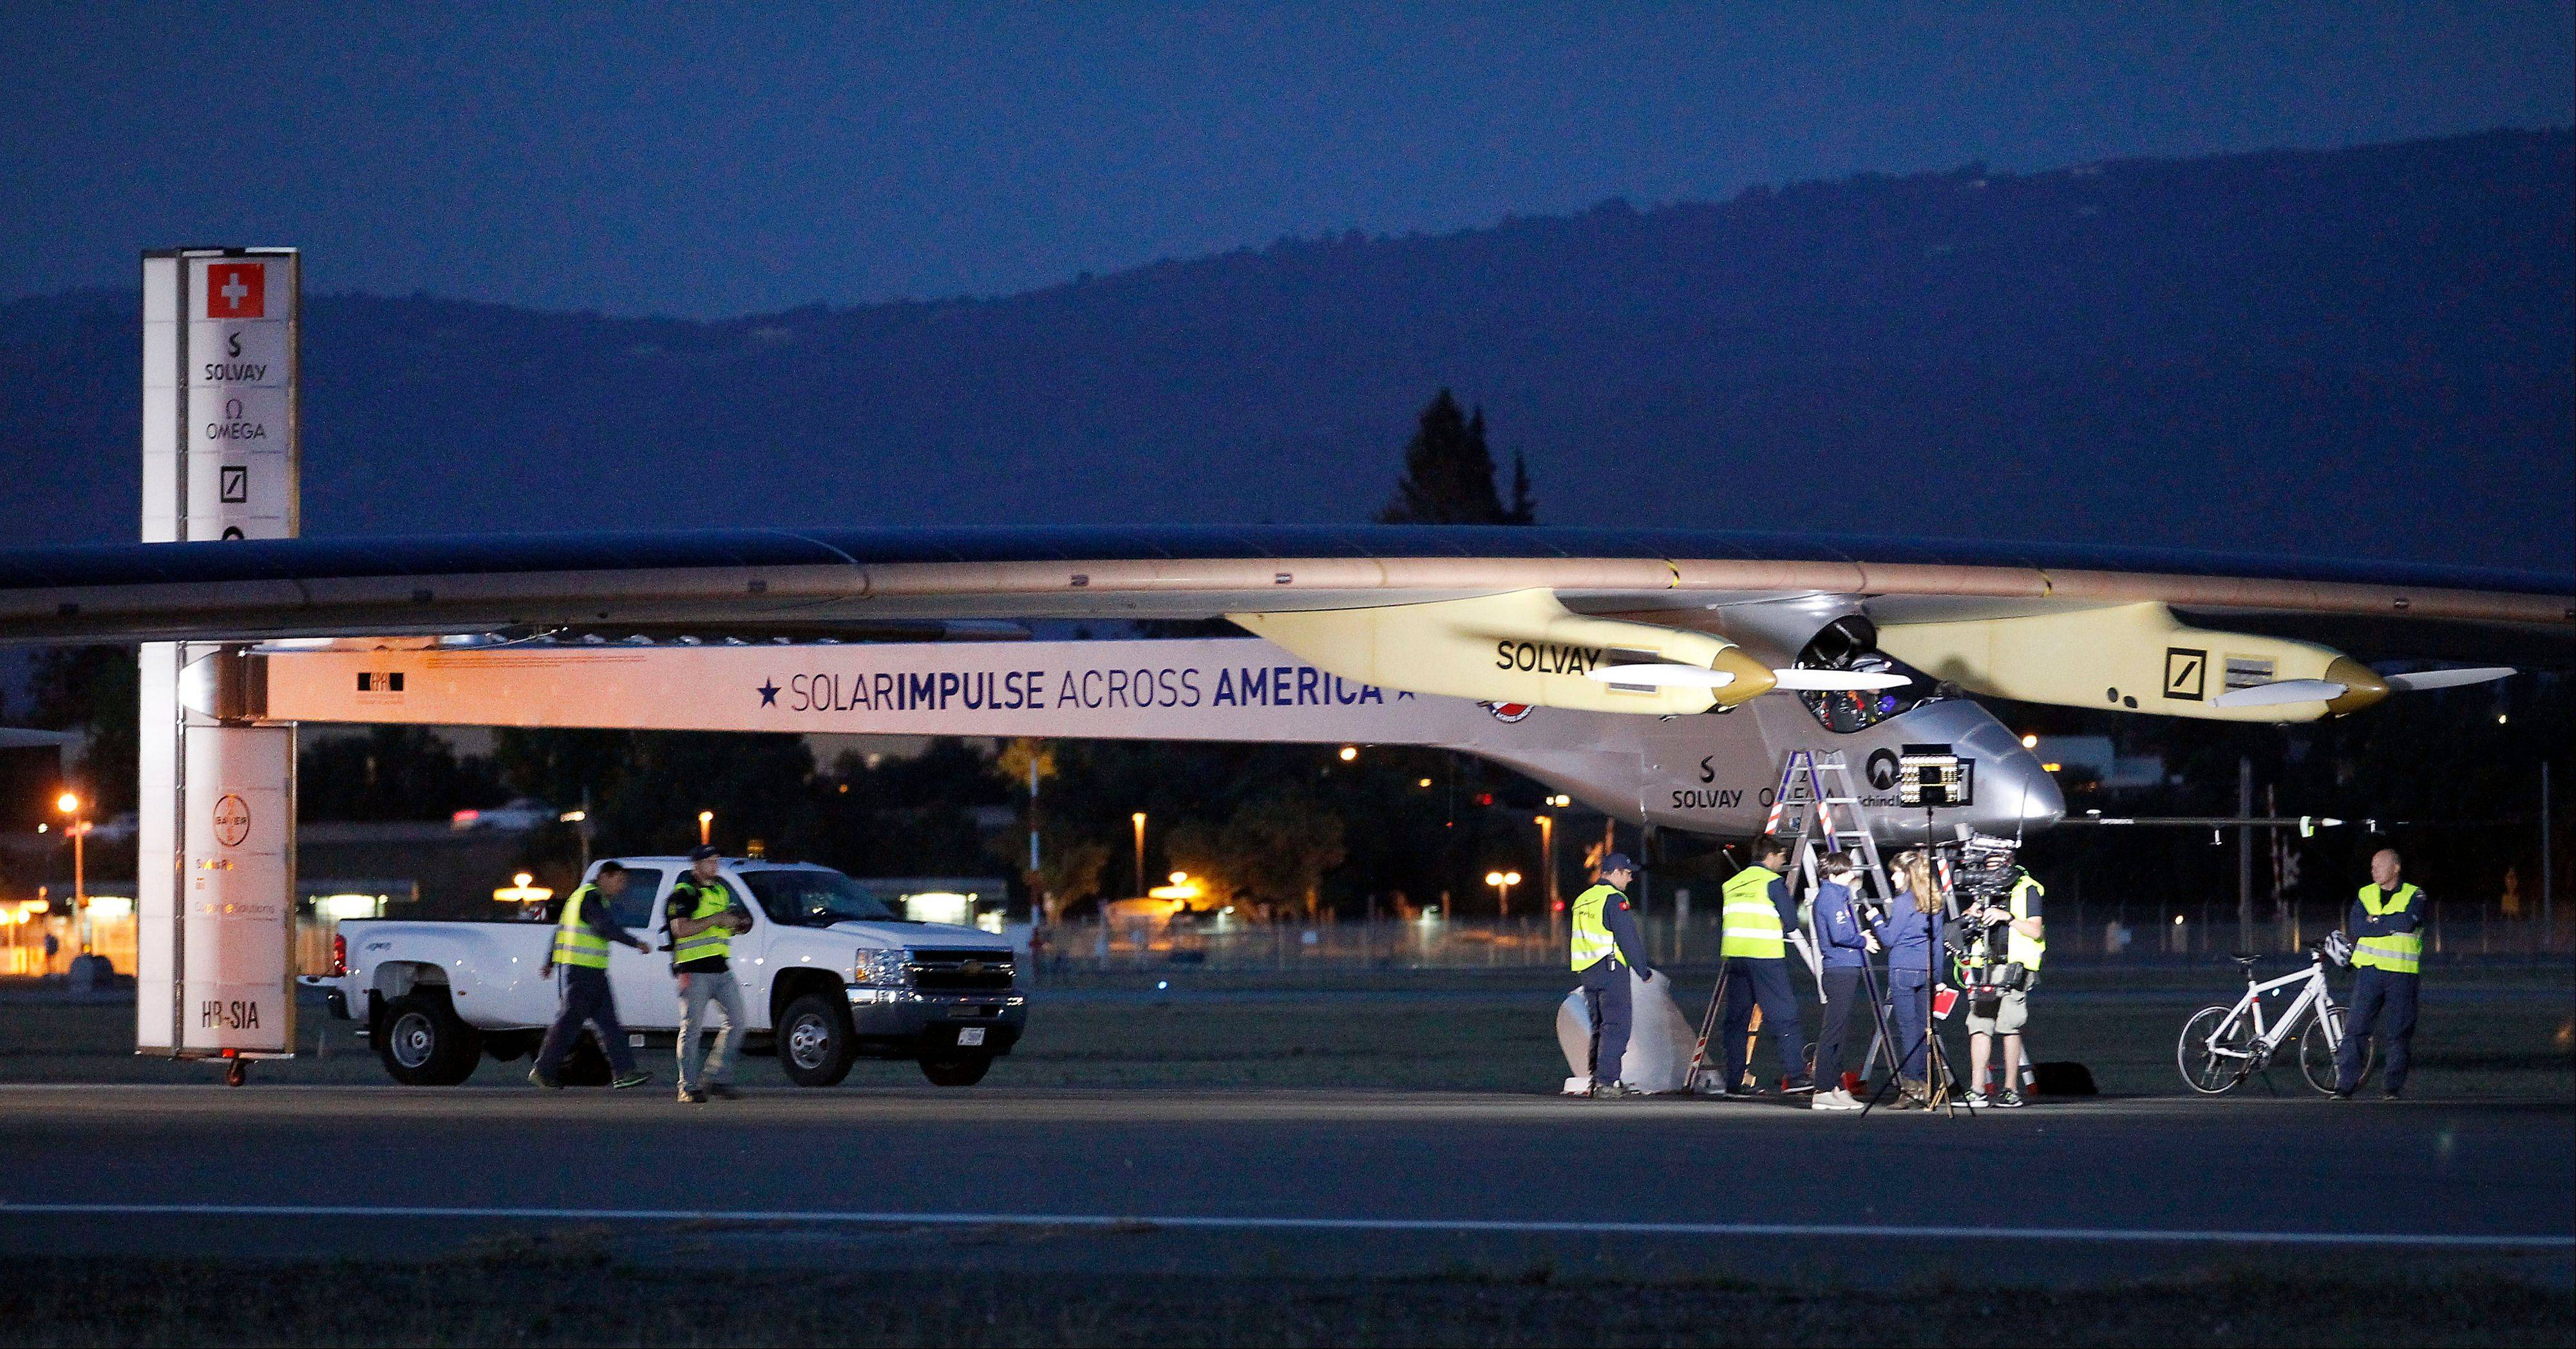 Ground crew prepares the Solar Impulse plane early in the morning Friday before taking off on a multi-city trip across the United States from Moffett Field NASA Ames Research Center in Mountain View, Calif.